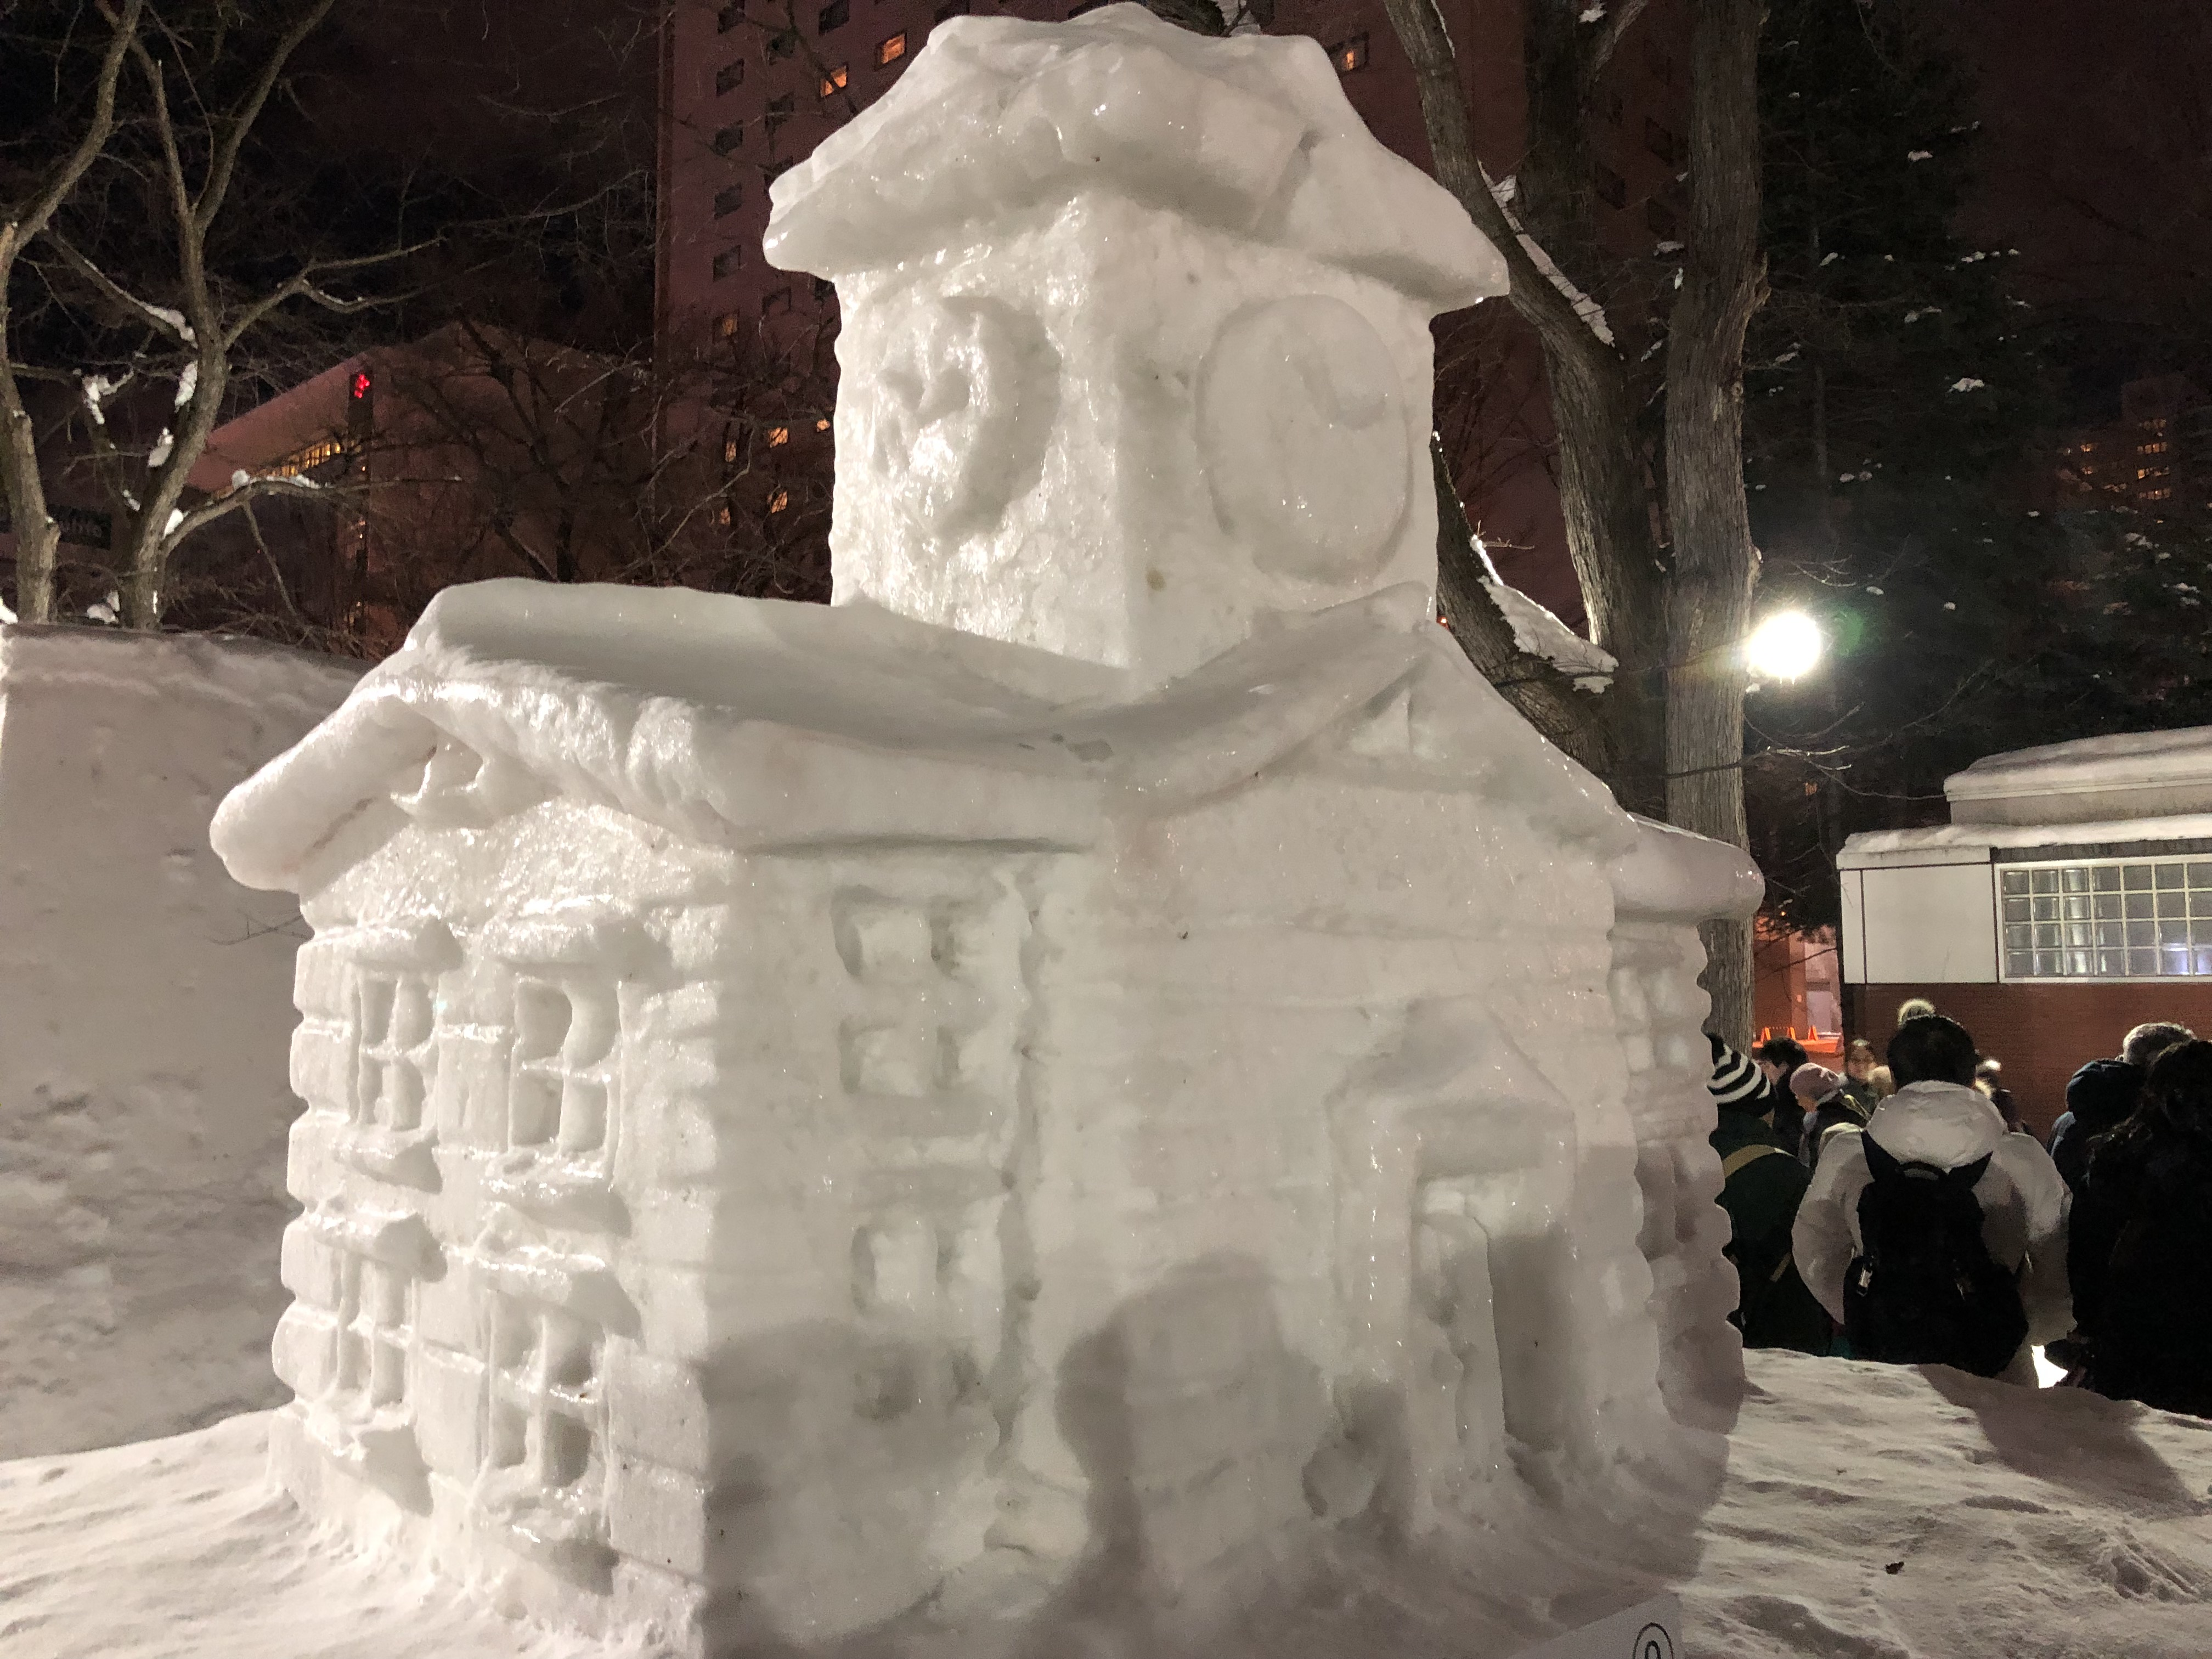 Sapporo ice clock tower, Citizens' Snow Sculptures